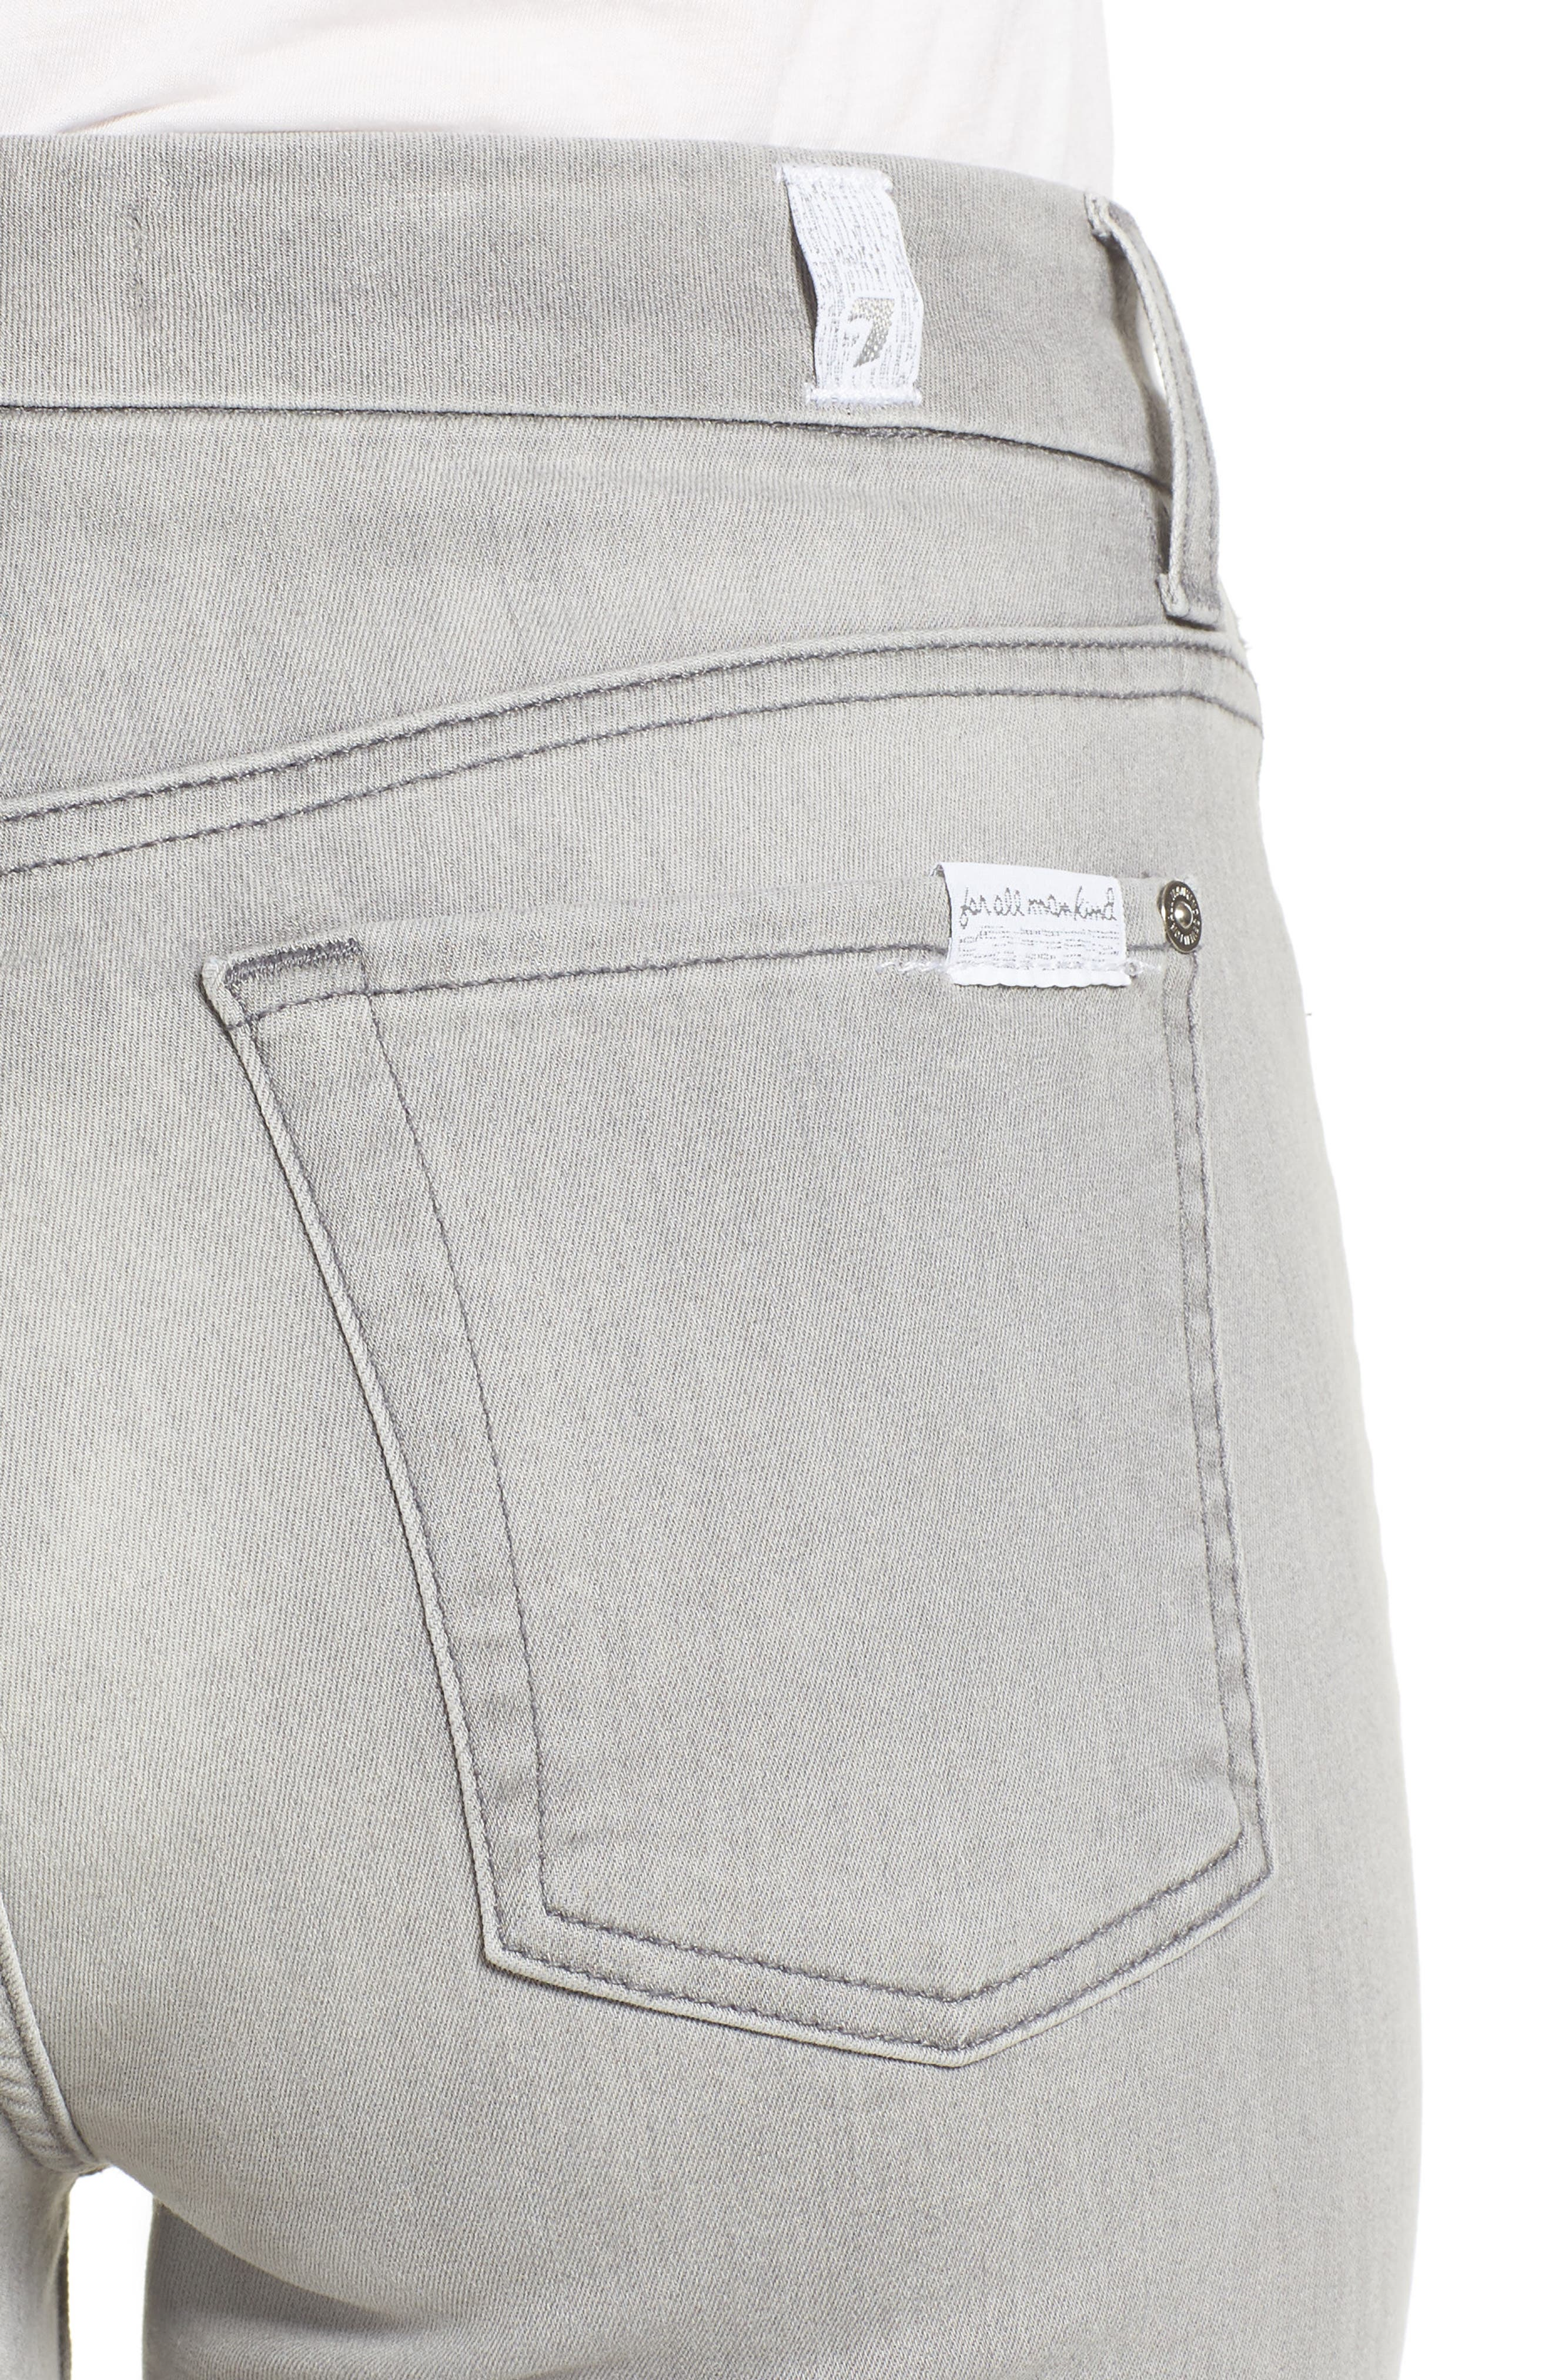 7 FOR ALL MANKIND<SUP>®</SUP>, b(air) High Waist Raw Hem Ankle Skinny Jeans, Alternate thumbnail 5, color, BAIR PURE SOFT GREY